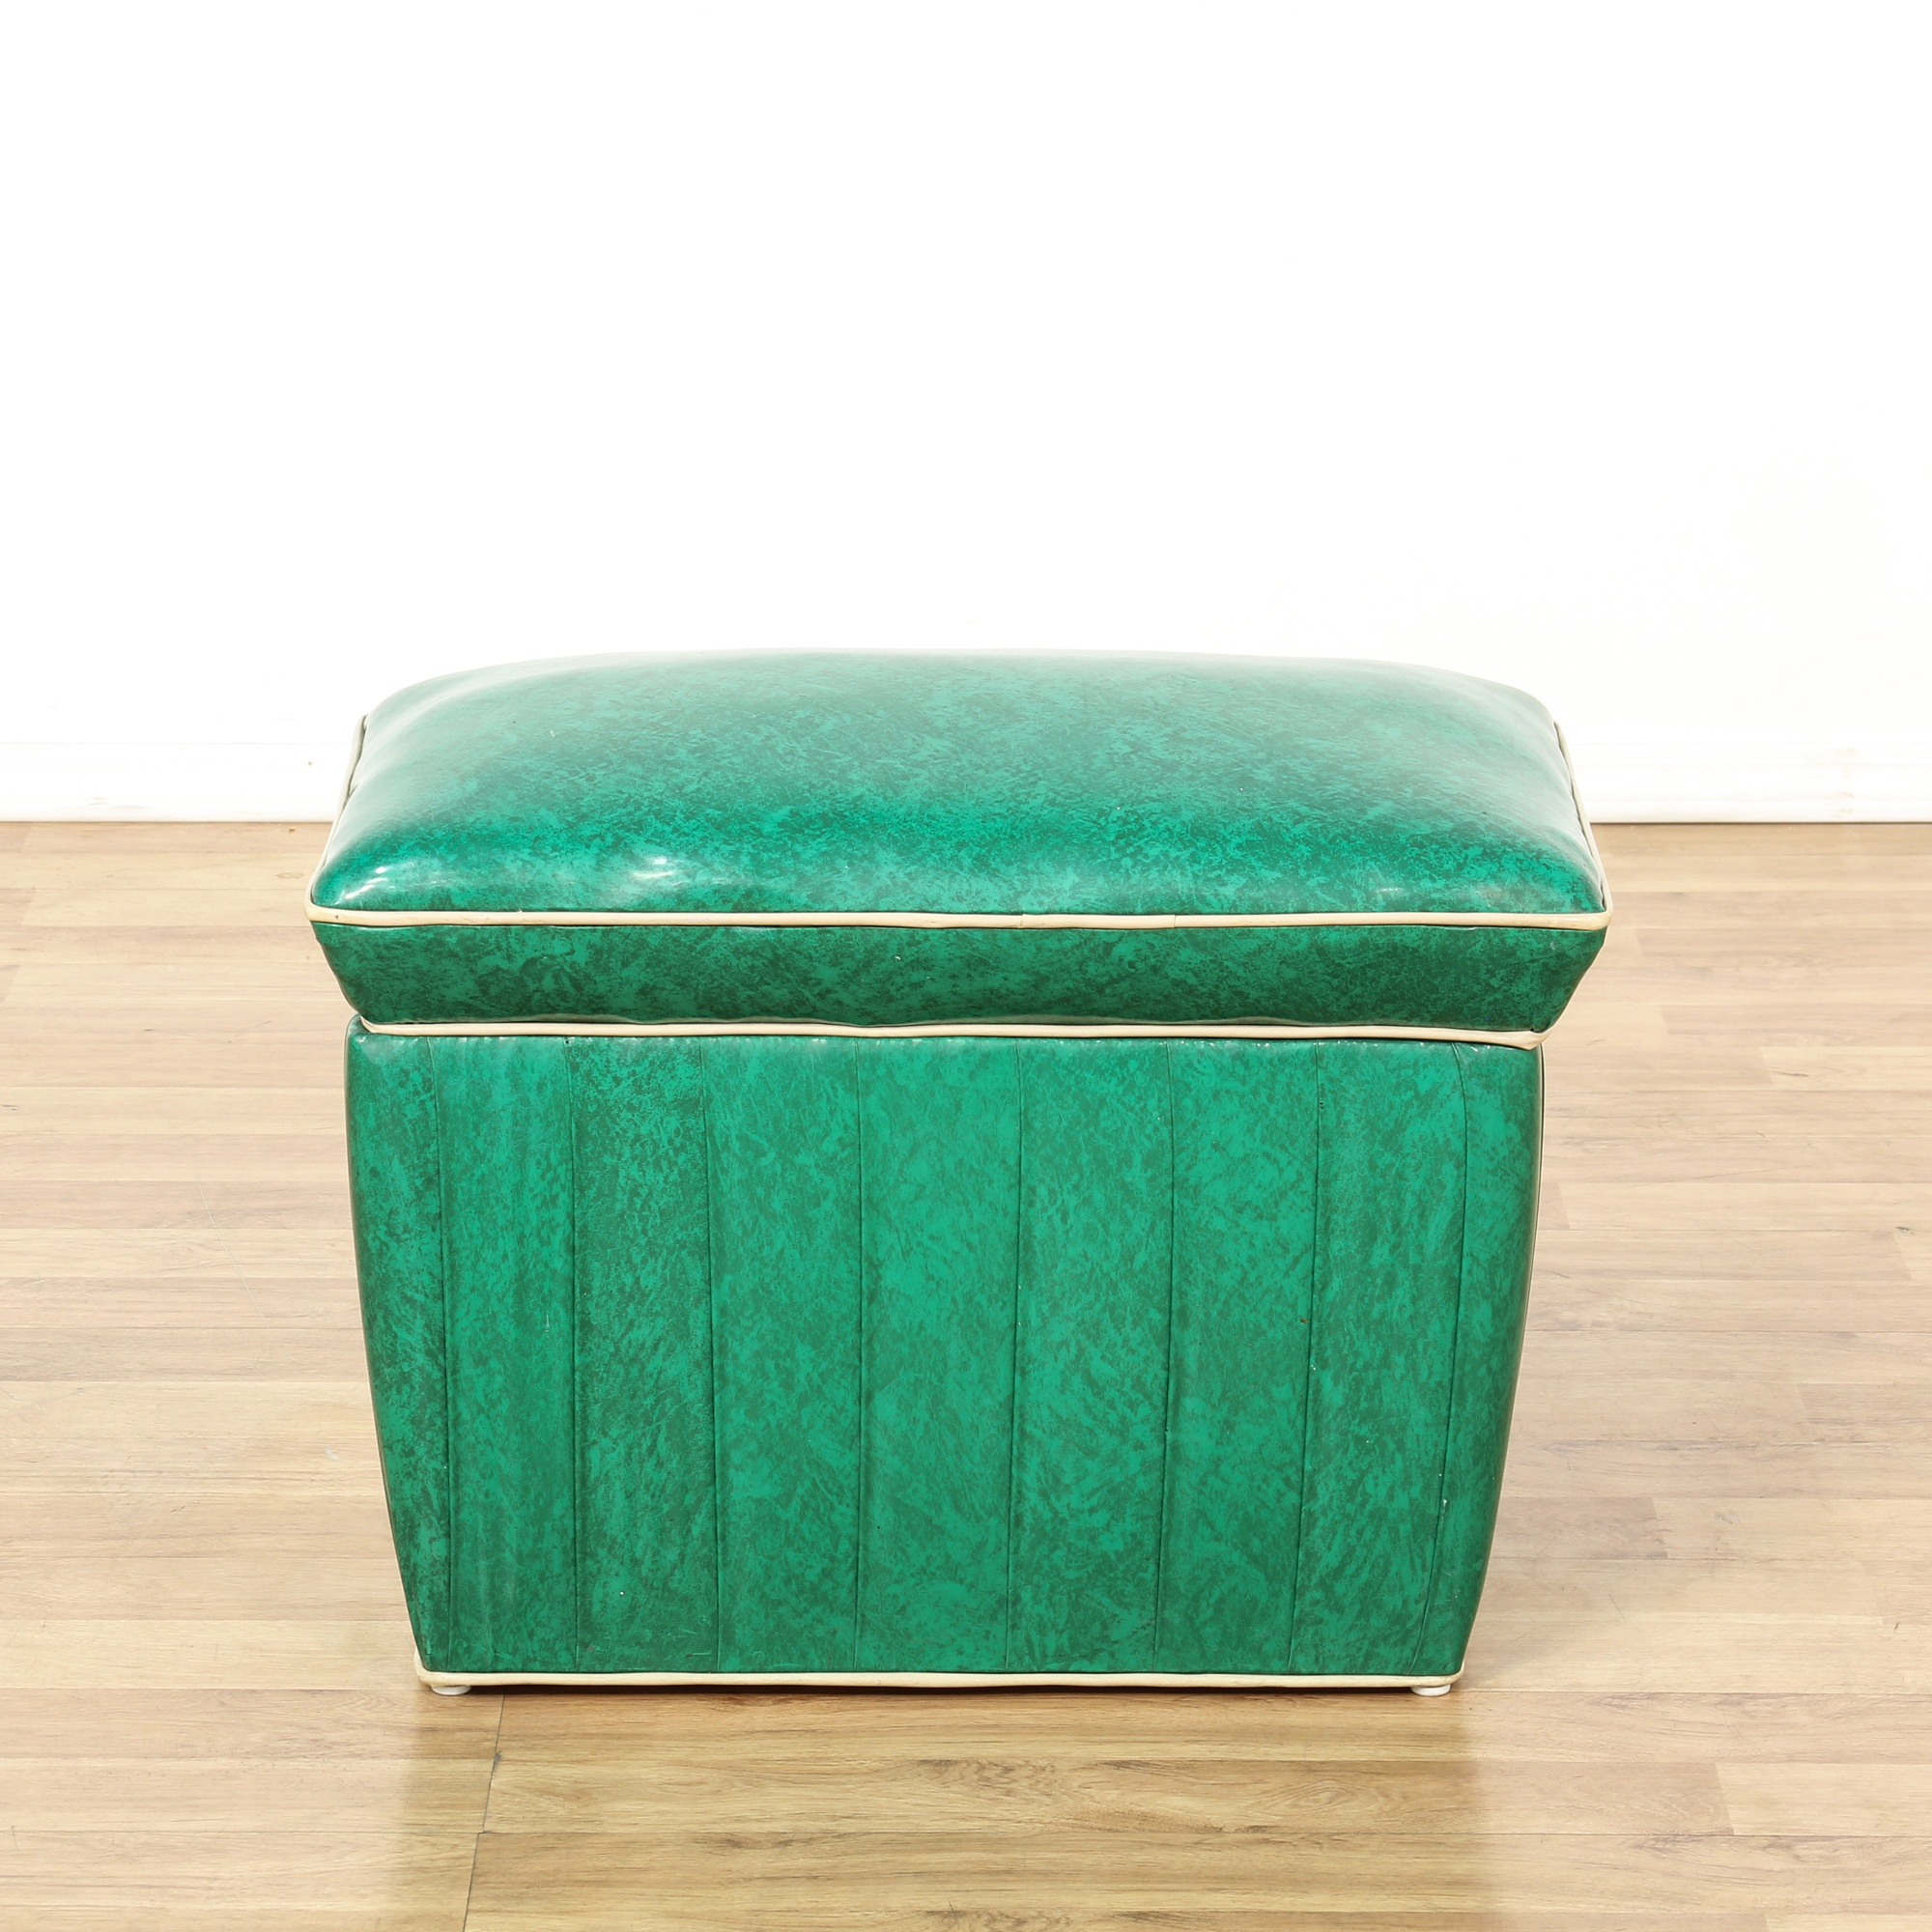 Retro Green Vinyl Upholstered Storage Ottoman Loveseat